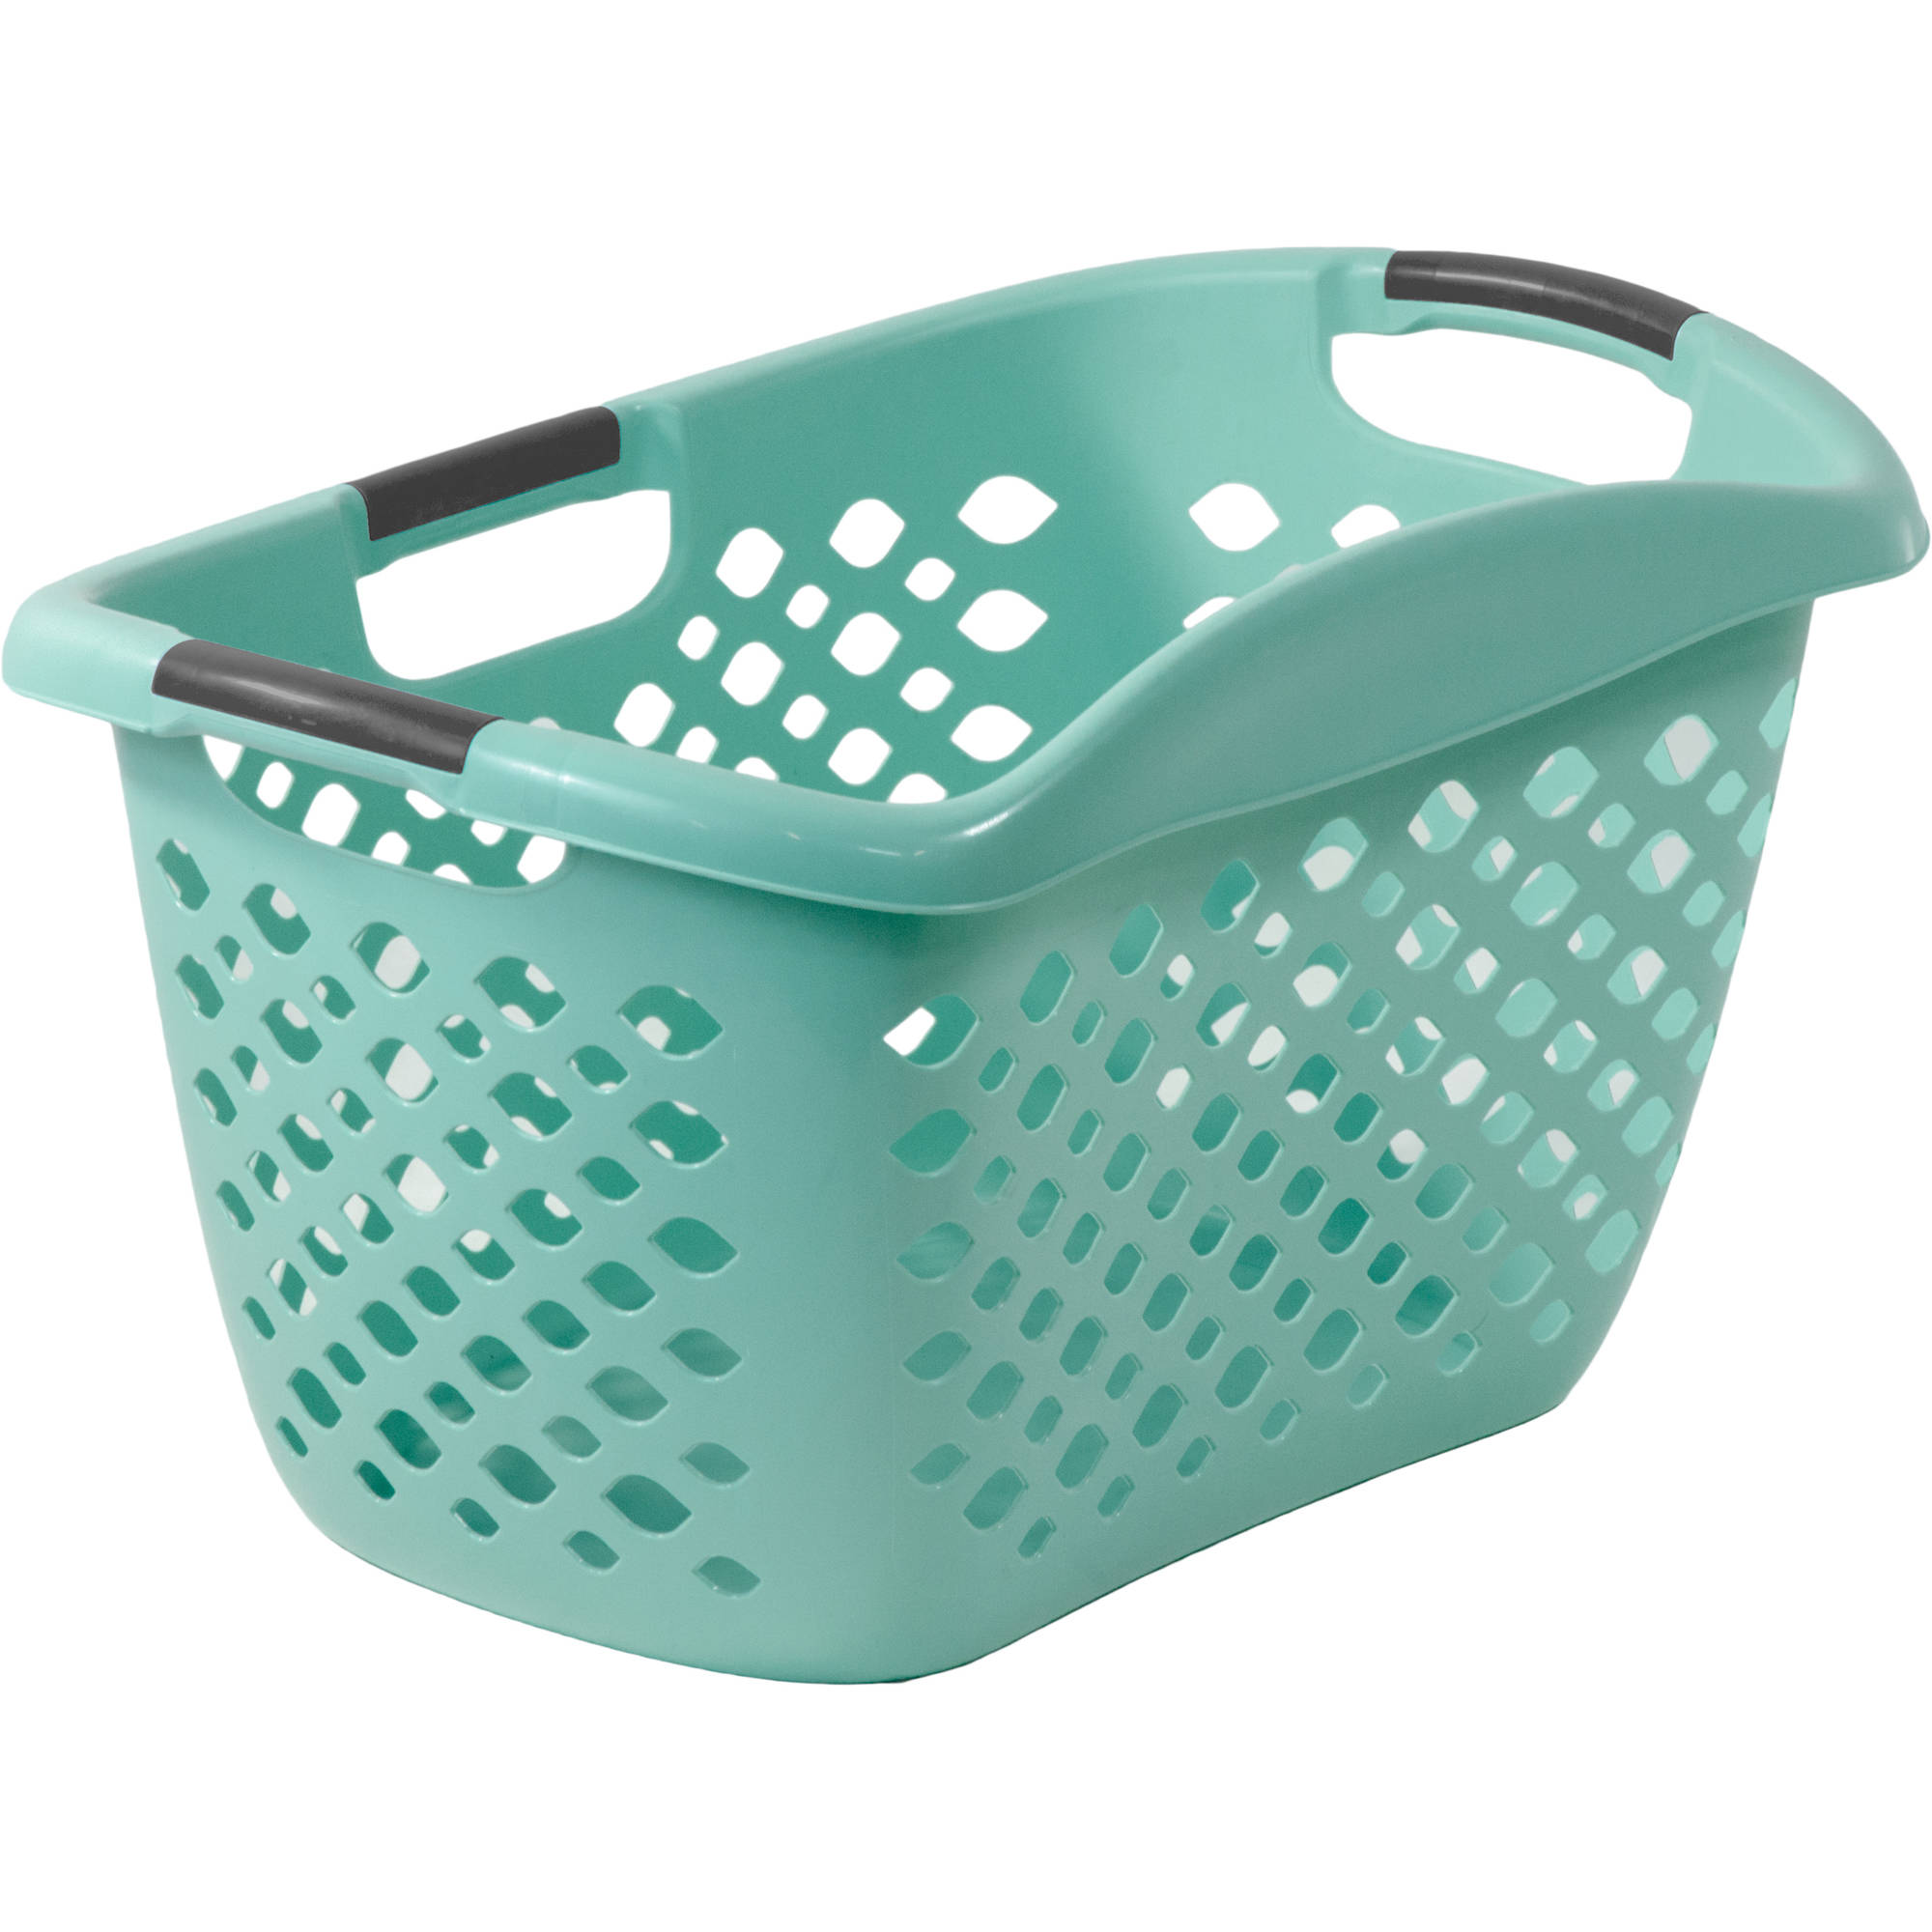 Home Logic 1.8-Bu Large-Capacity Hip Grip Laundry Basket, Teal Splash